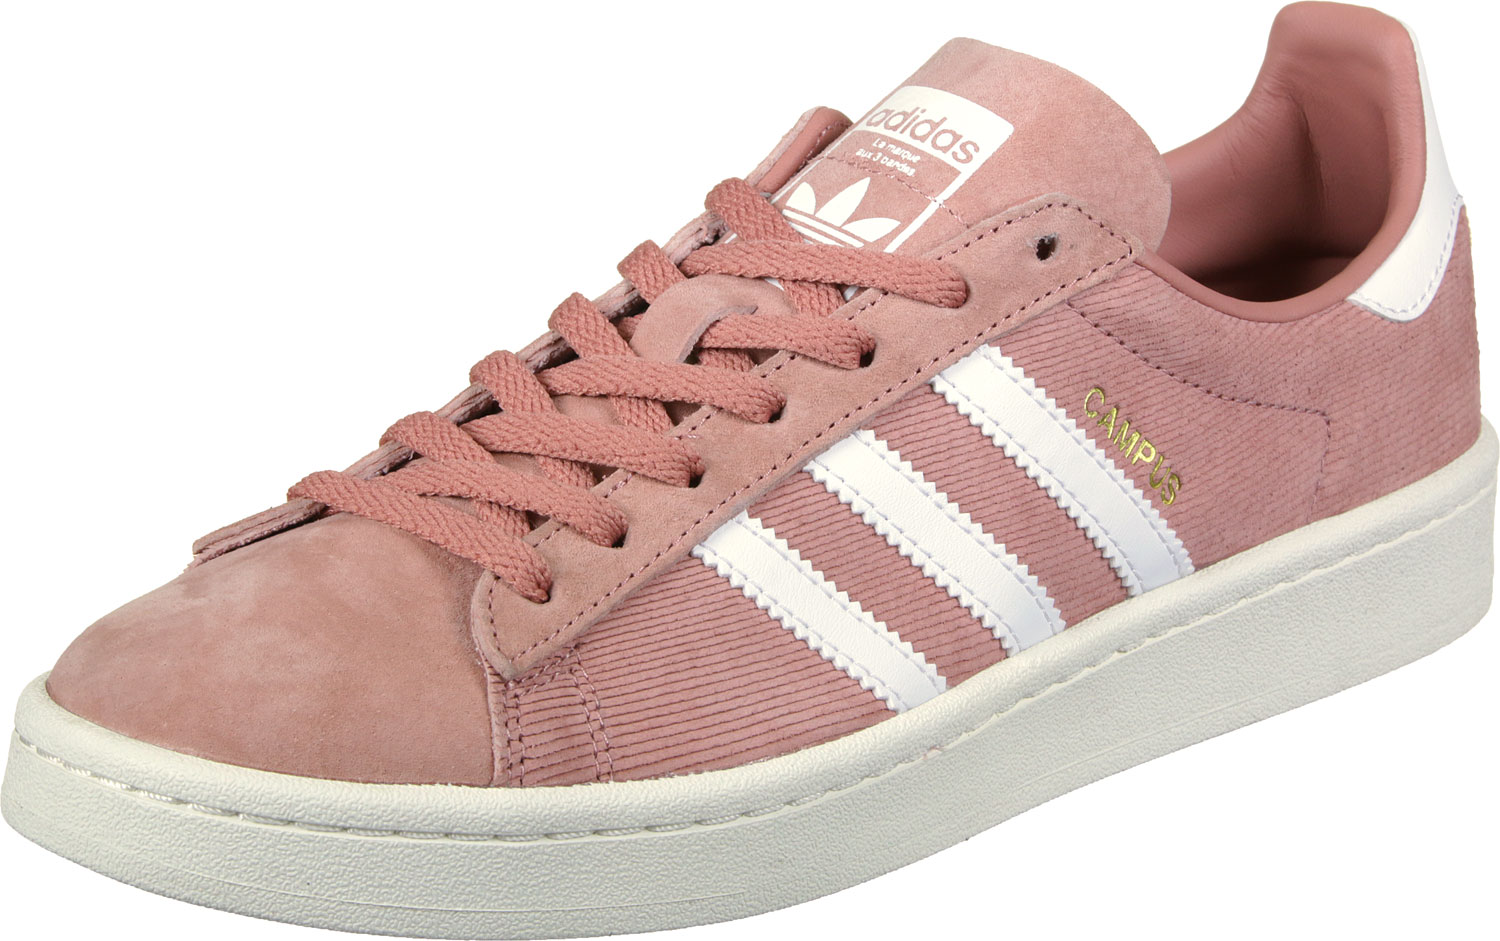 adidas Campus W - Sneakers Low at Stylefile